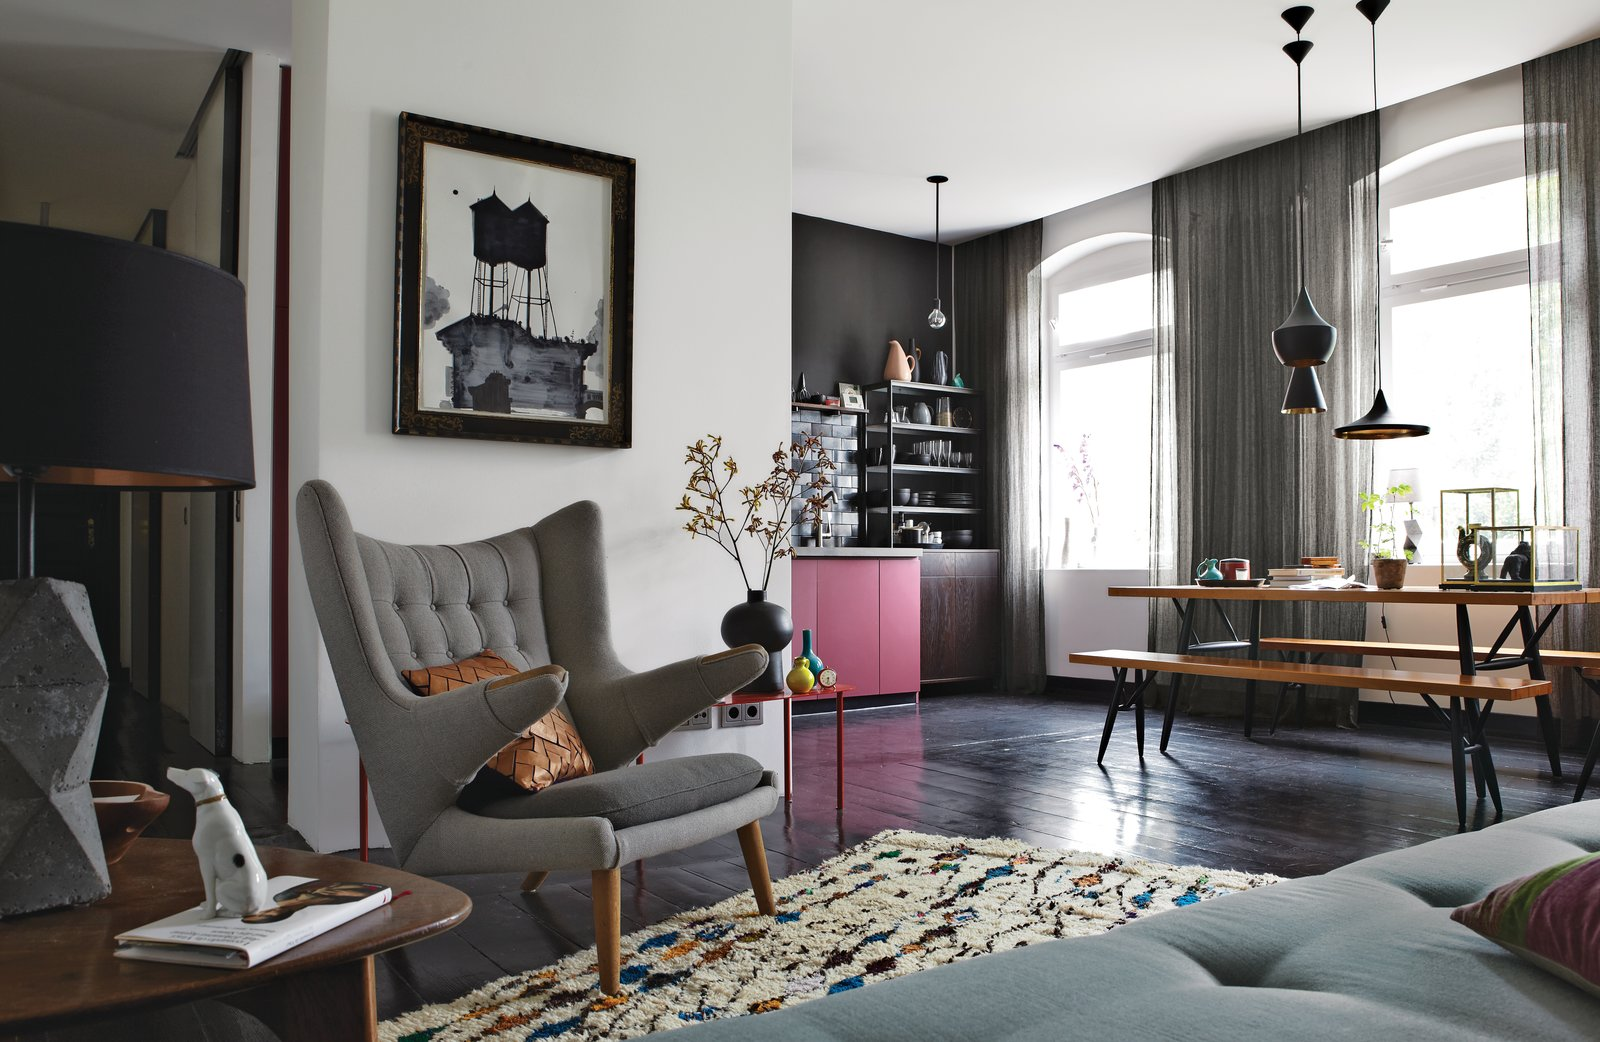 The old wood floors throughout the open-plan space are painted a dark eggplant. The vintage PP19 armchair is by Hans J. Wegner for PP Møbler. The painting above it is by Ruben Toledo, a friend of Peter Fehrentz, the resident. A trio of Tom Dixon lights hangs over the Pirkka dining table, with bench seating by Ilmari Tapiovaara for Artek. The Berber rug is from Morocco, purchased from the Paris shop Caravane. Tagged: Living Room, Pendant Lighting, Chair, Sofa, Coffee Tables, and Dark Hardwood Floor.  127+ Inspiring Interior Ideas by Dwell from Inside Peter Fehrentz's Renovated Flat in Berlin